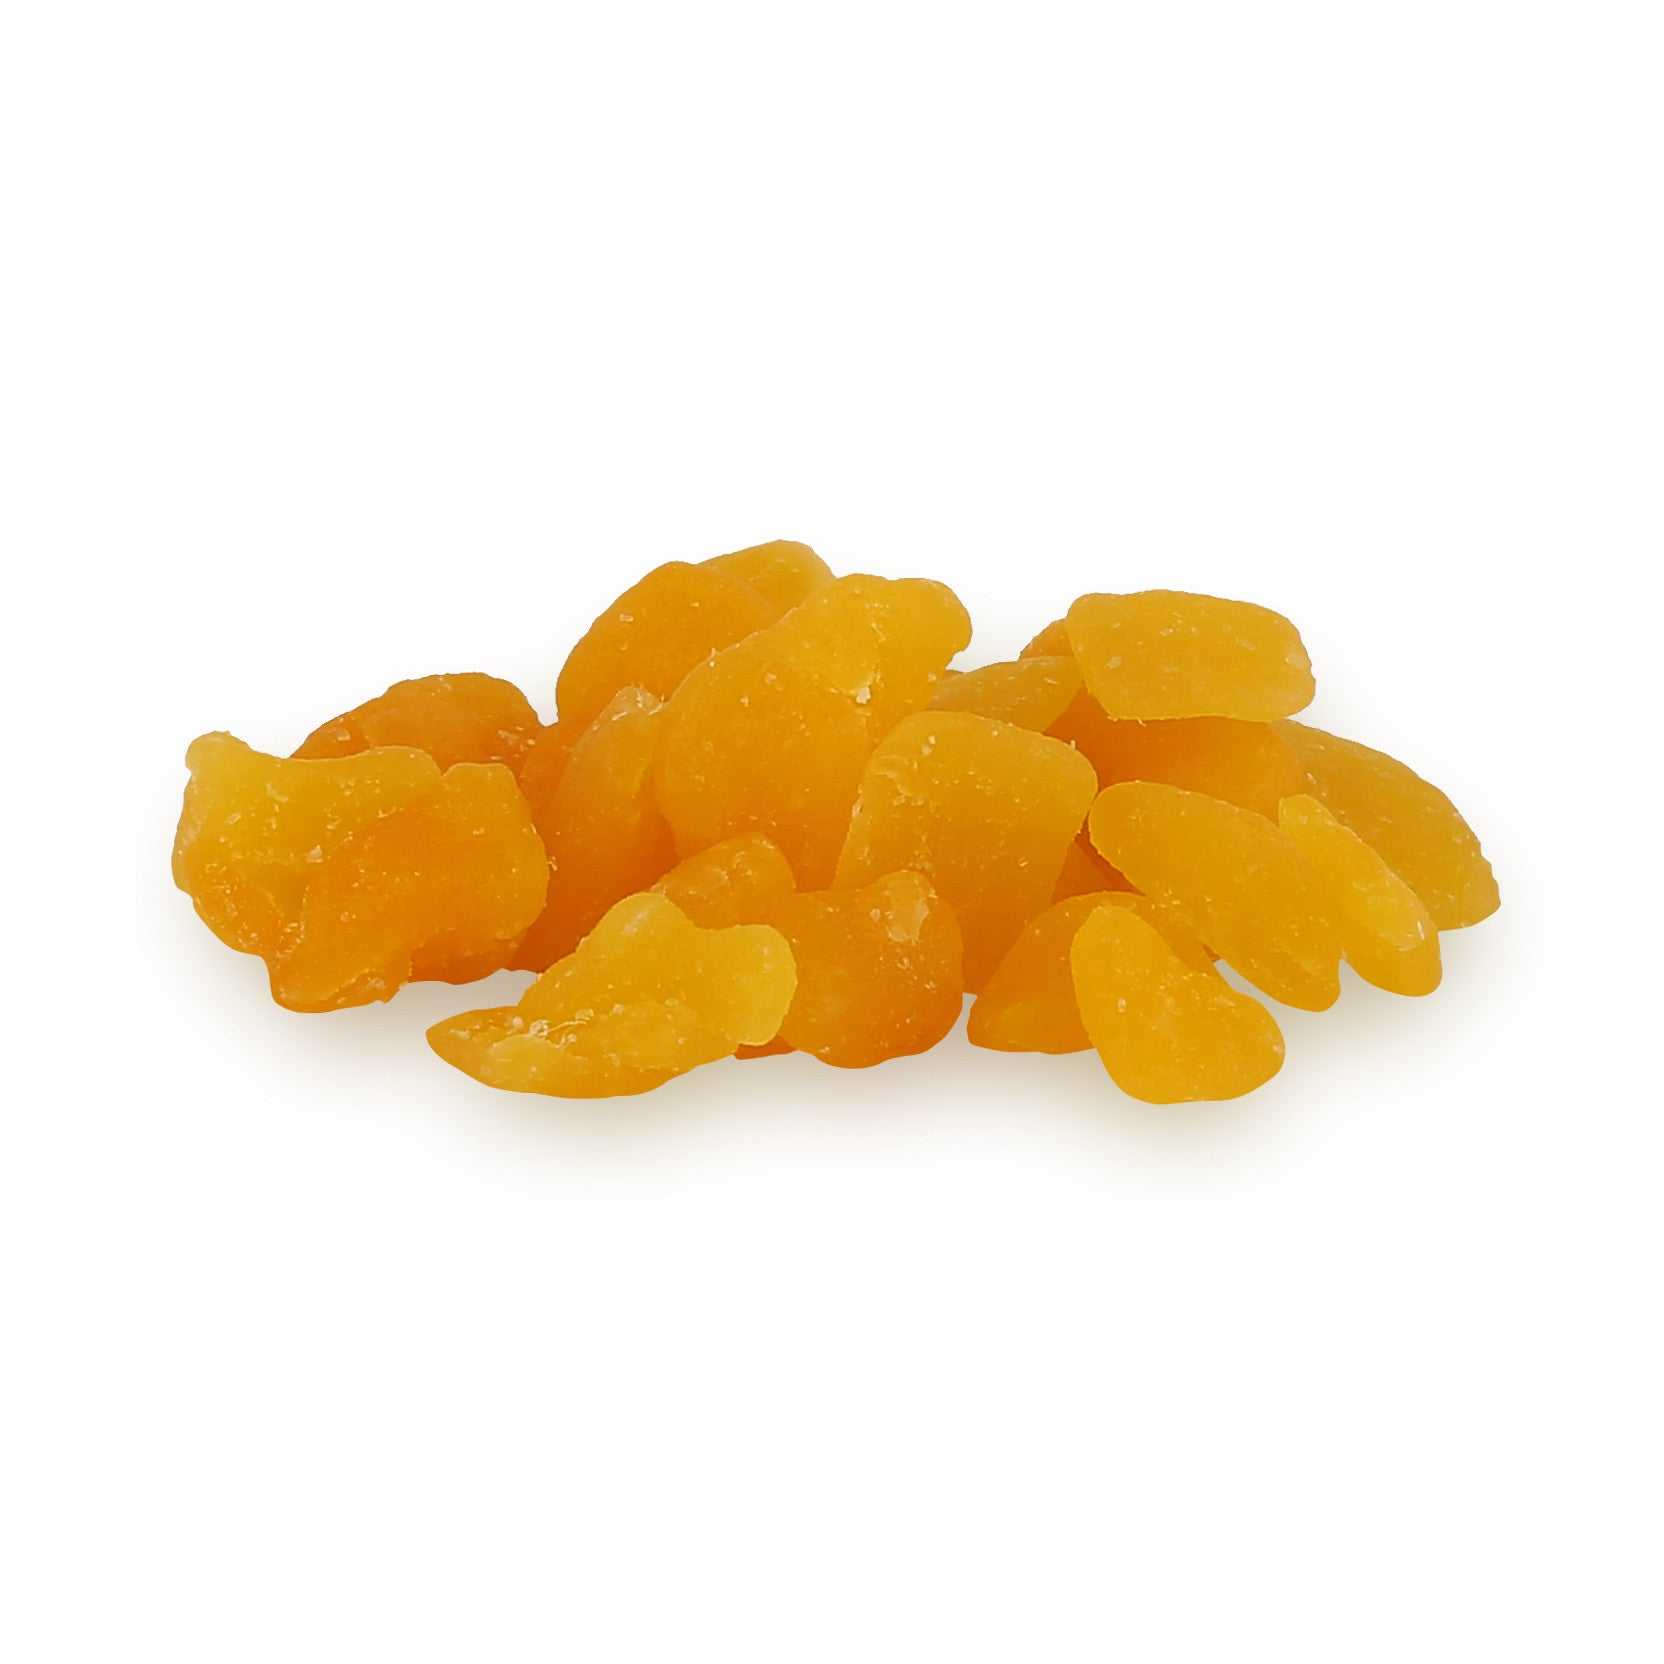 Naturo Mango Fruitbits - 135g